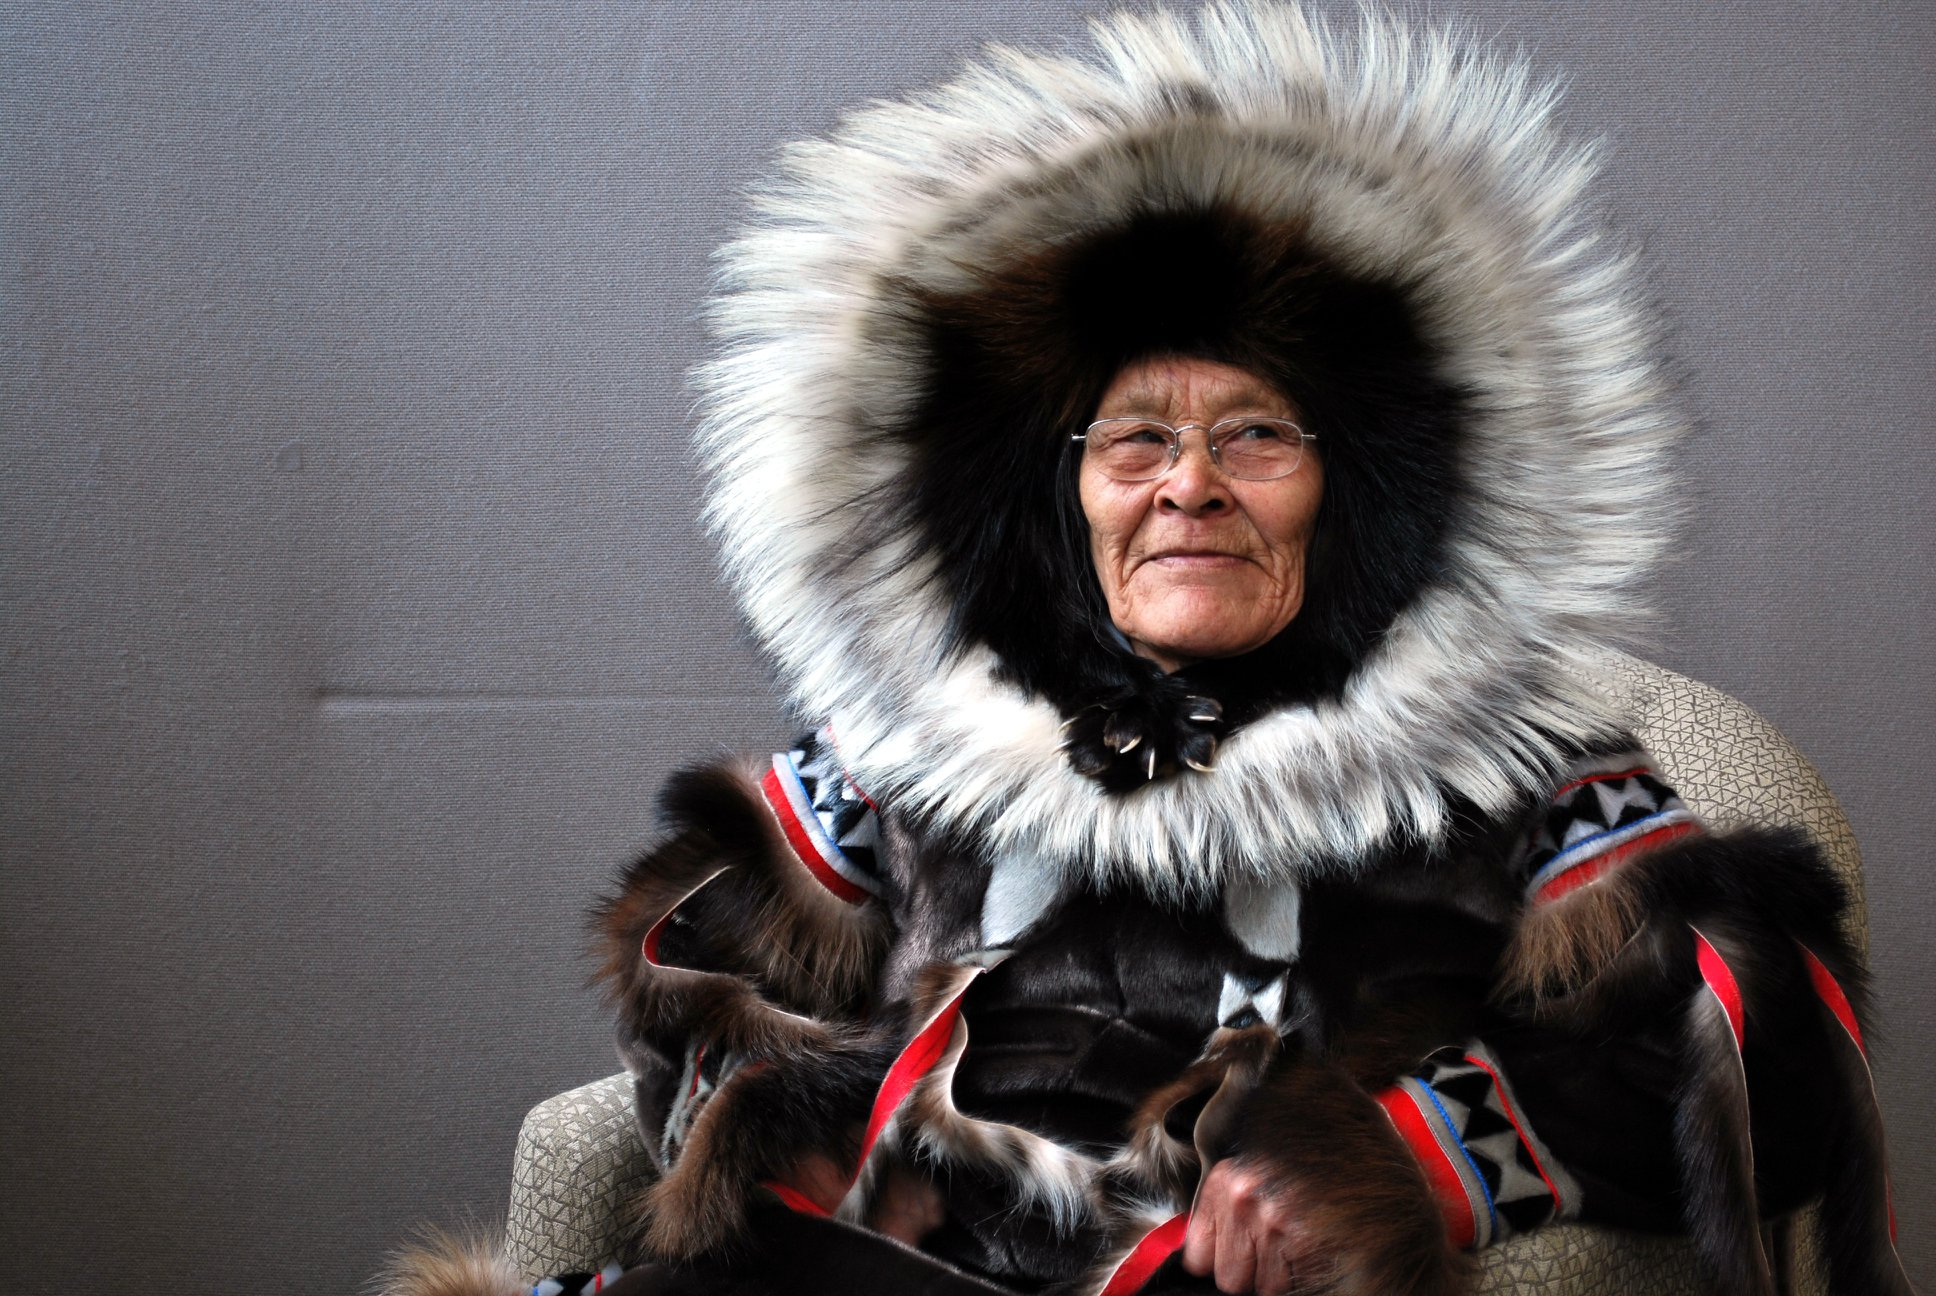 Cambridge Bay's Lena Ayalik Kamoayok, who served as an elder in residence and a board member for the Pitquhirnikkut Ilihautiniq—formerly known as the Kitikmeot Heritage Society—died Oct. 19 at the age of 79. She's seen here wearing an Inuinnait-style starburst-hooded fur parka.